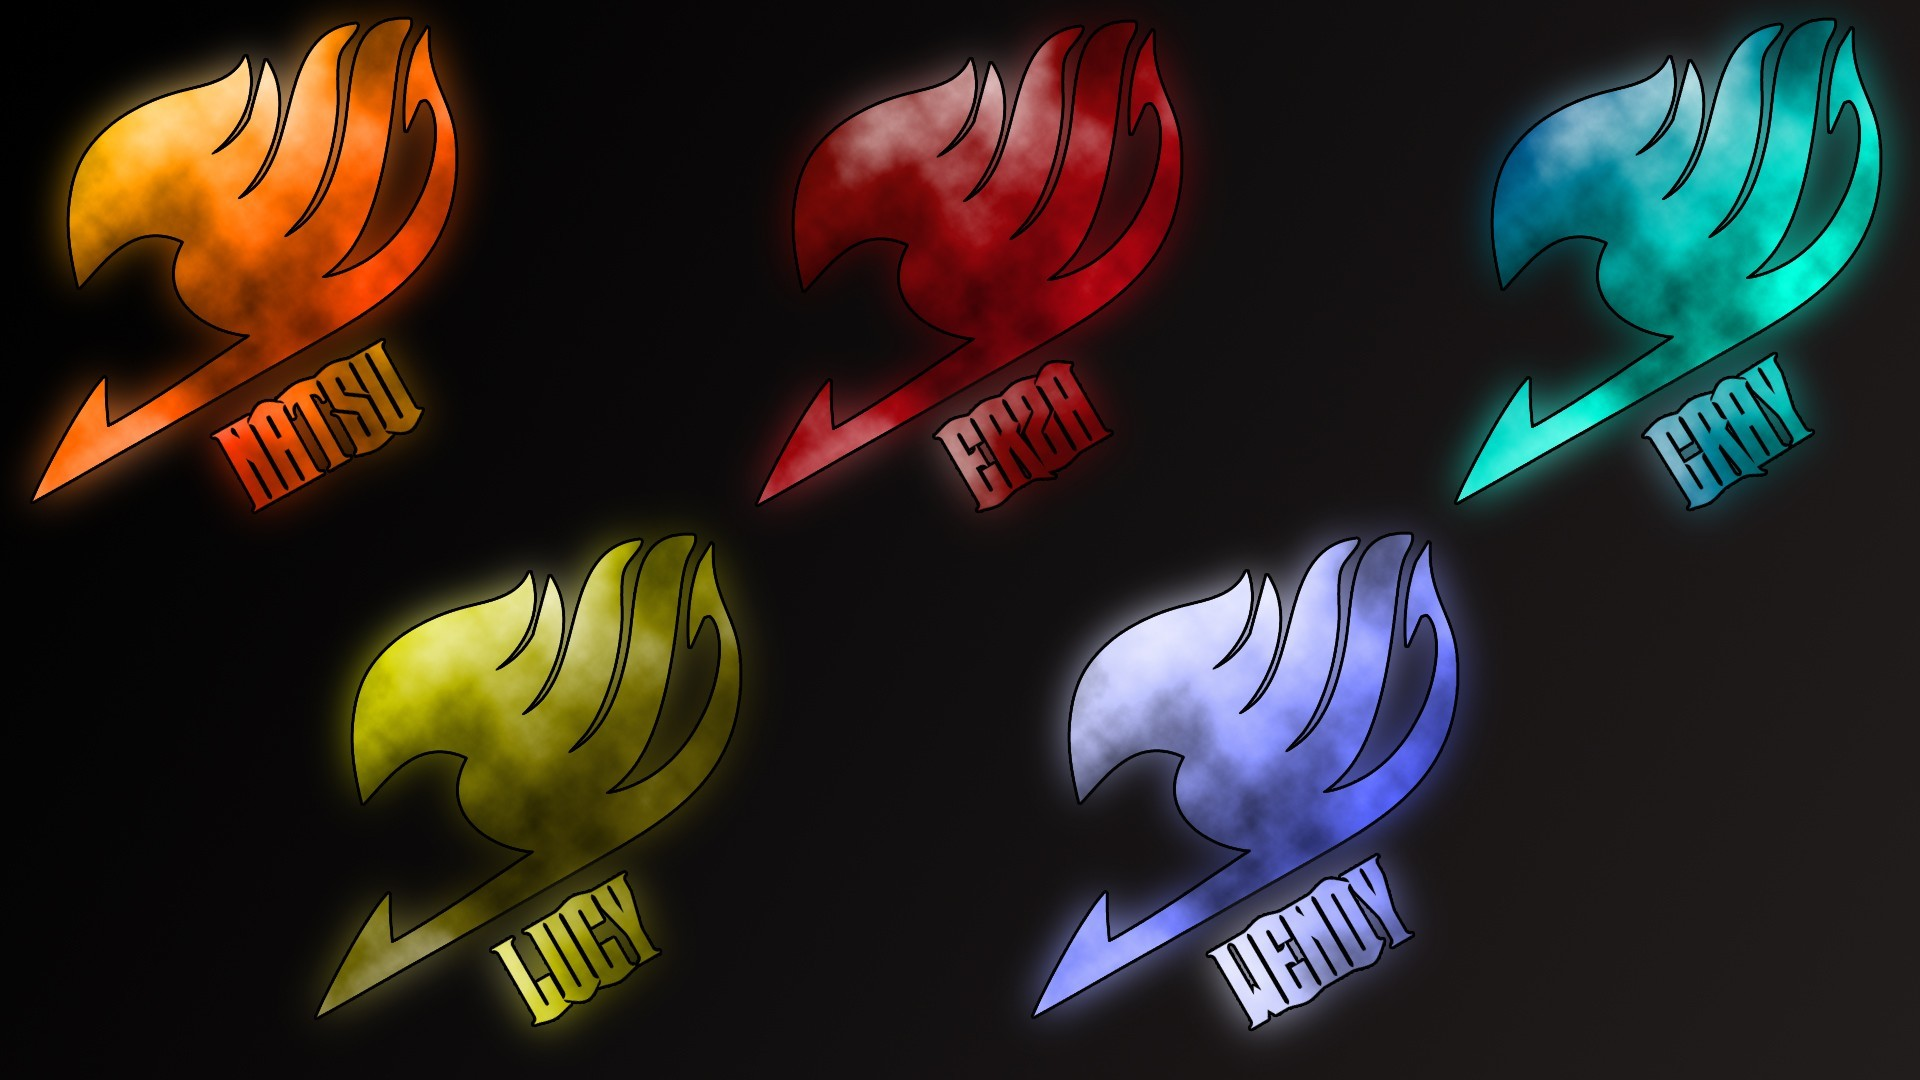 1920x1080 Anime Fairy Tail Logo In Many Colors Wallpaper Fairy Tail Wallpaper